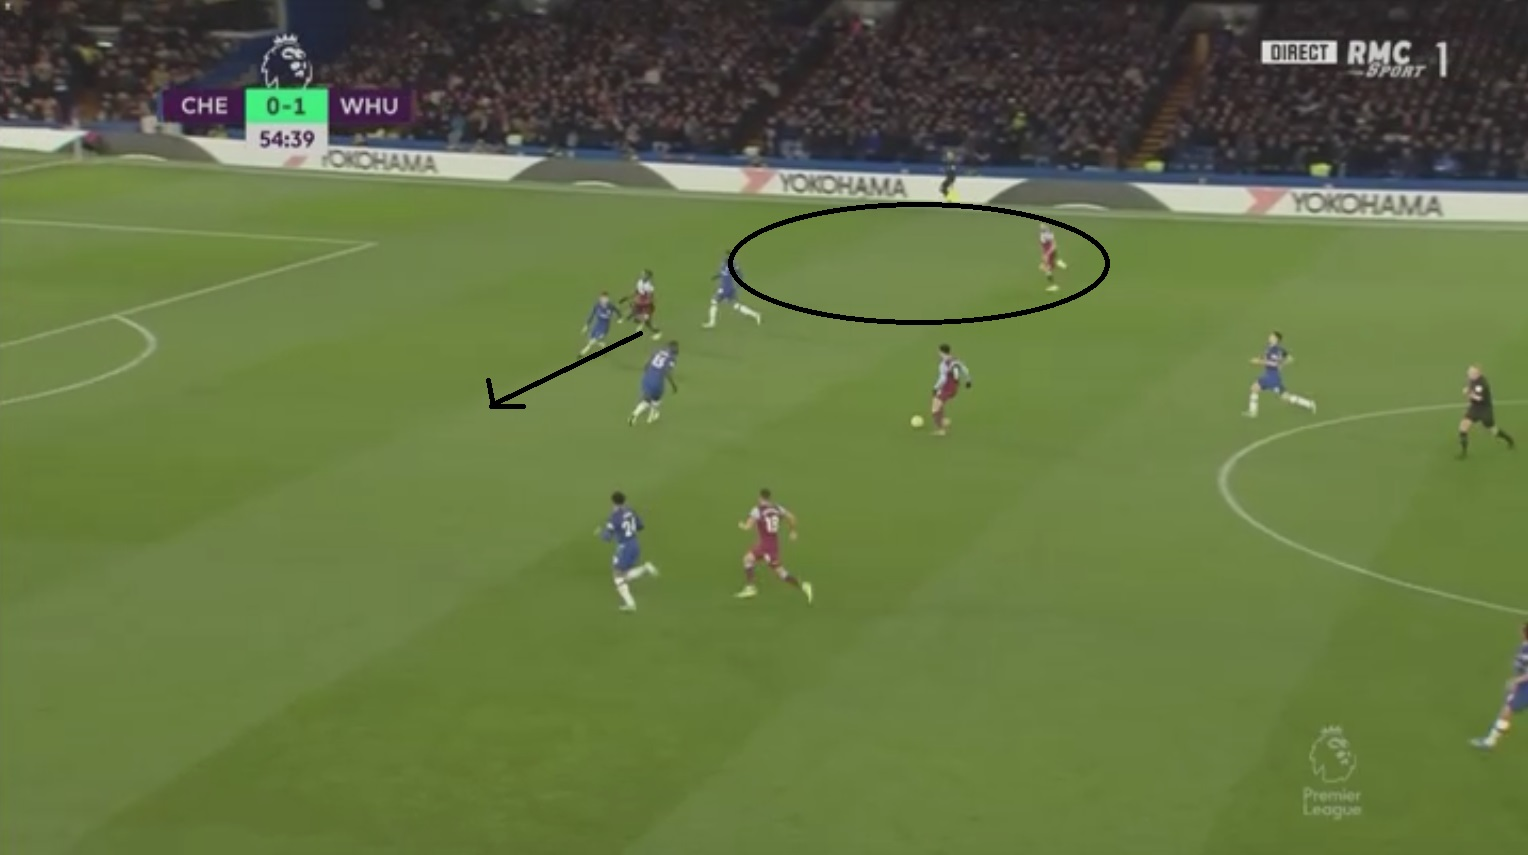 Premier League 2019/20: Chelsea vs West Ham - tactical analysis